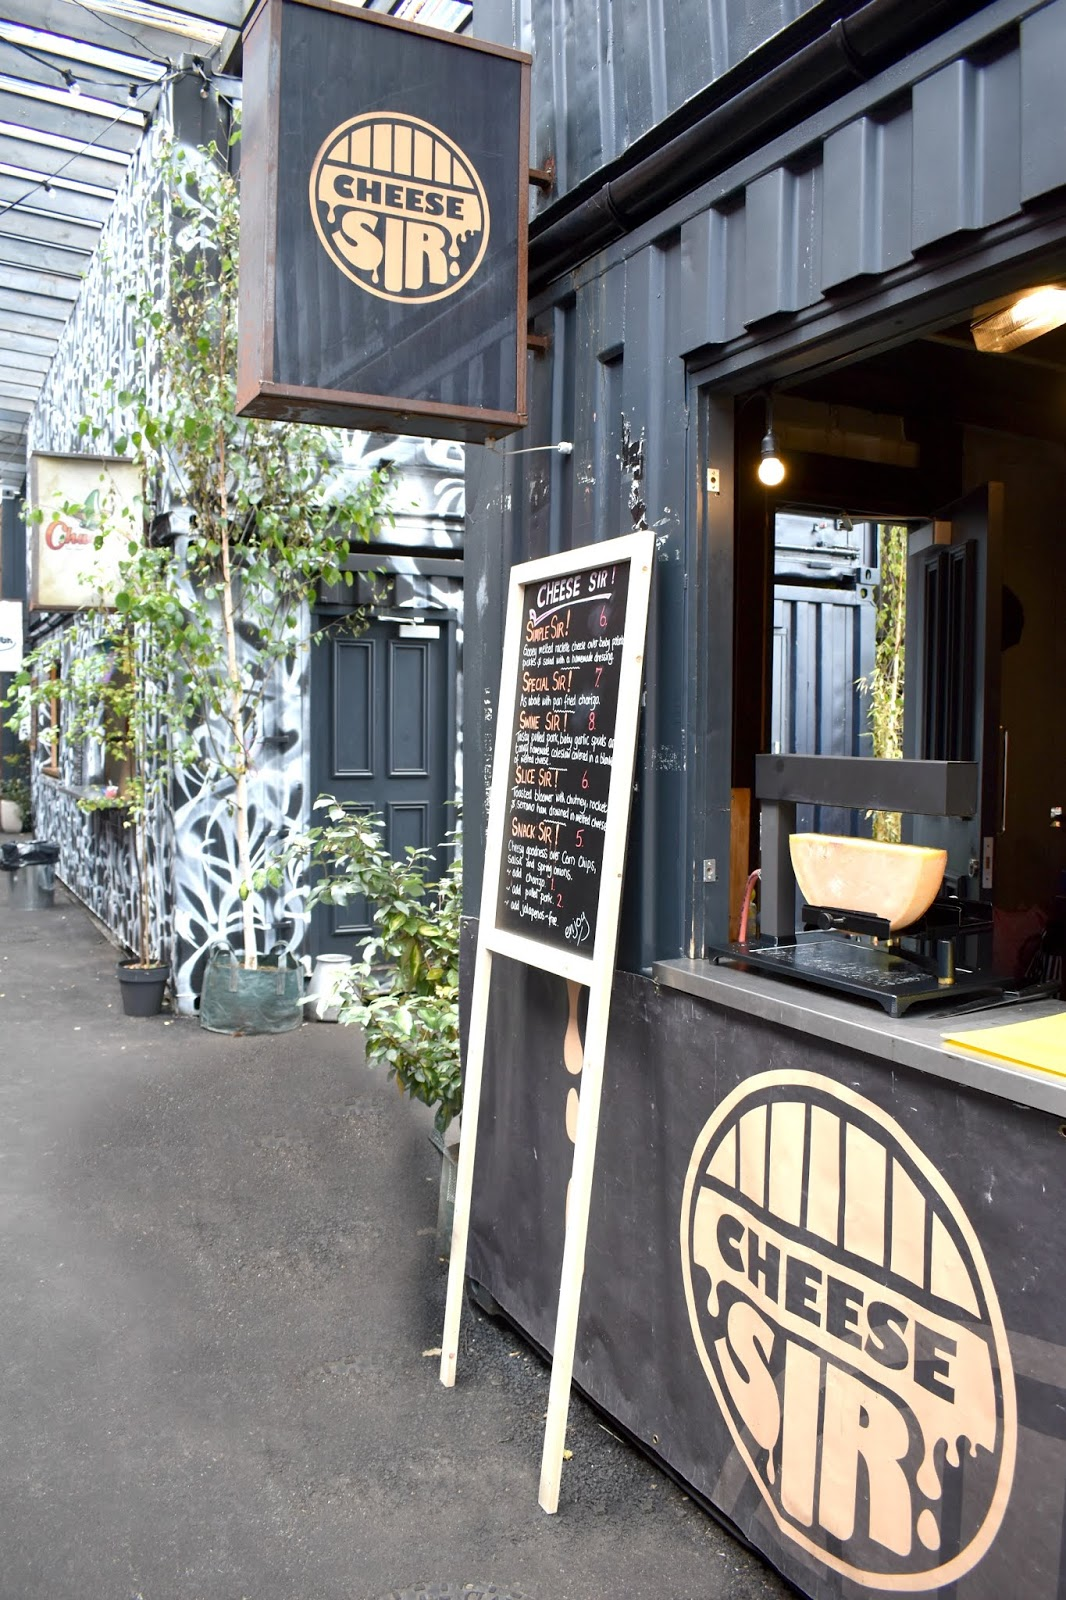 The Best Street Food in Newcastle! HWKRMRKT, By the River Brew Co  - Cheese Sir